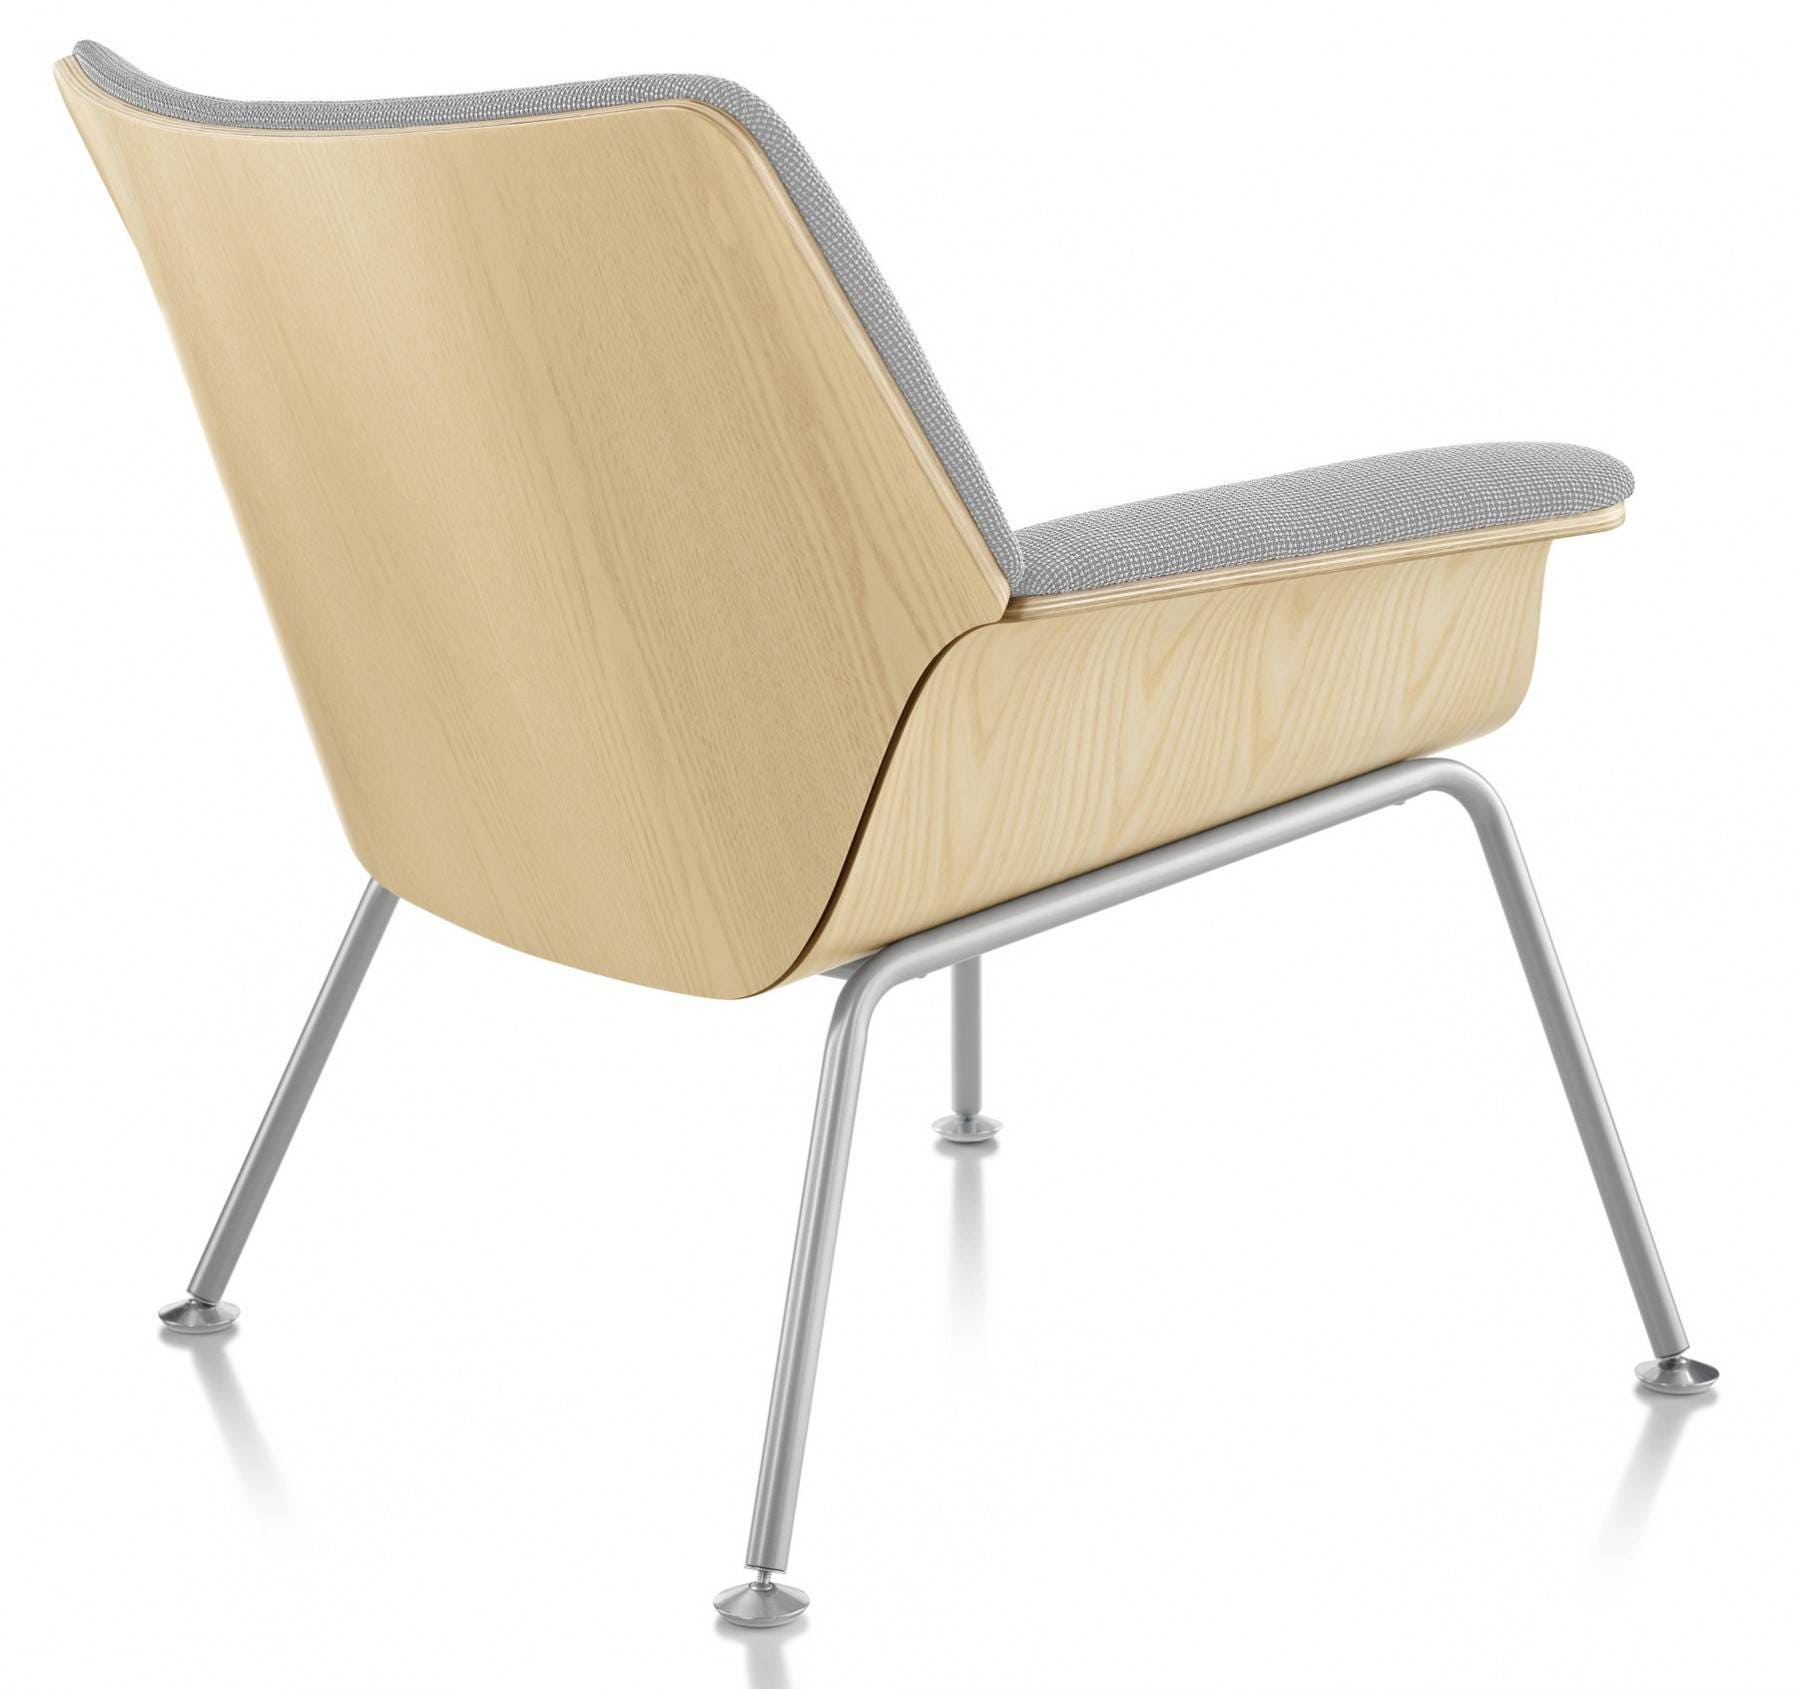 Herman Miller Swoop Plywood Lounge Chair GR Shop Canada